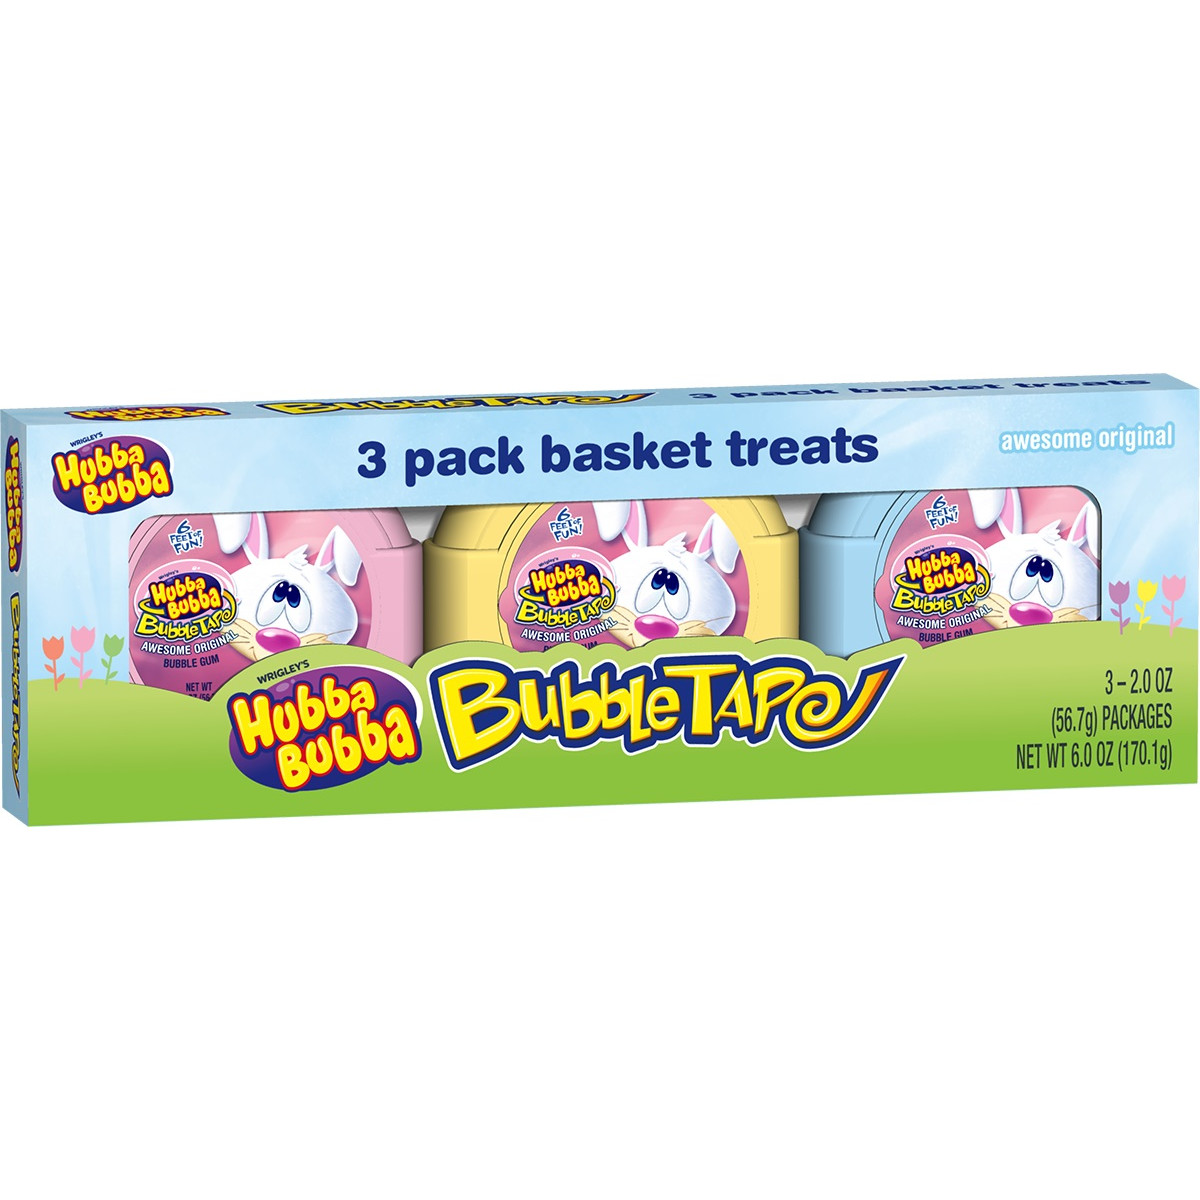 Hubba Bubba Original Bubble Easter Gum Tape, 2 ounce rolls, 3 total rolls